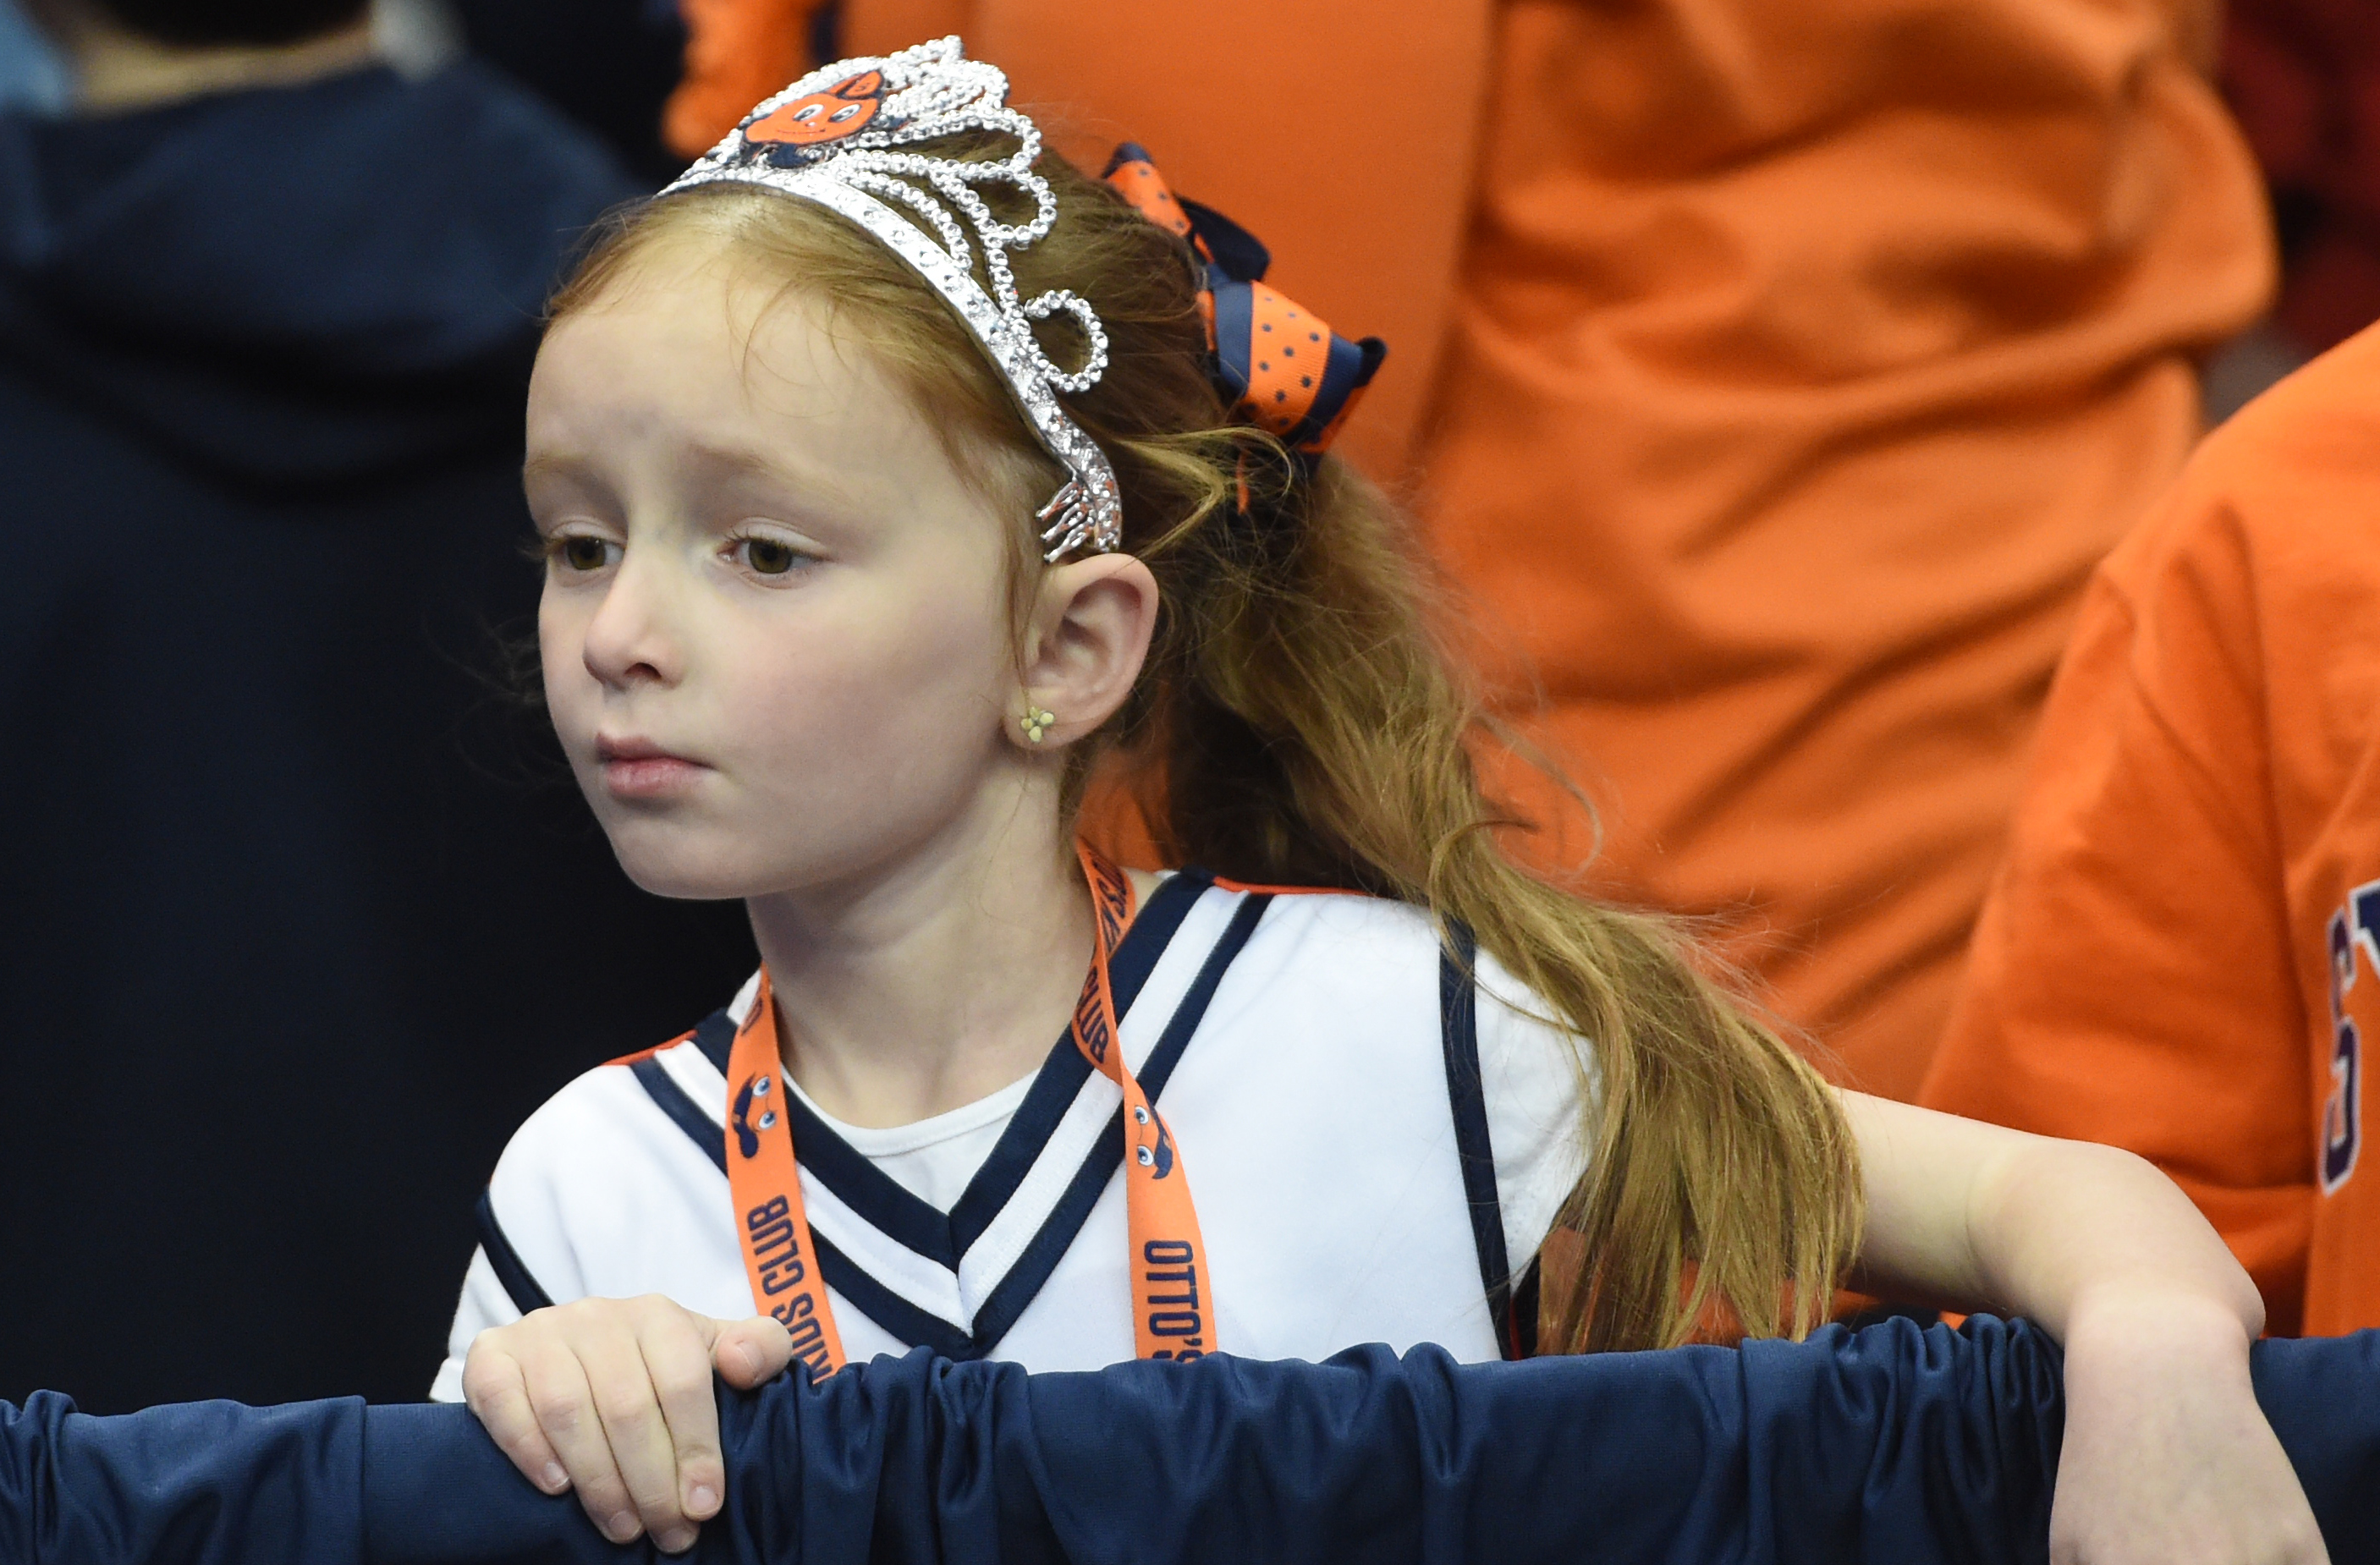 Is Buddy Boeheim the next JJ Redick? Fans, media react to Syracuse basketball's win over Pitt